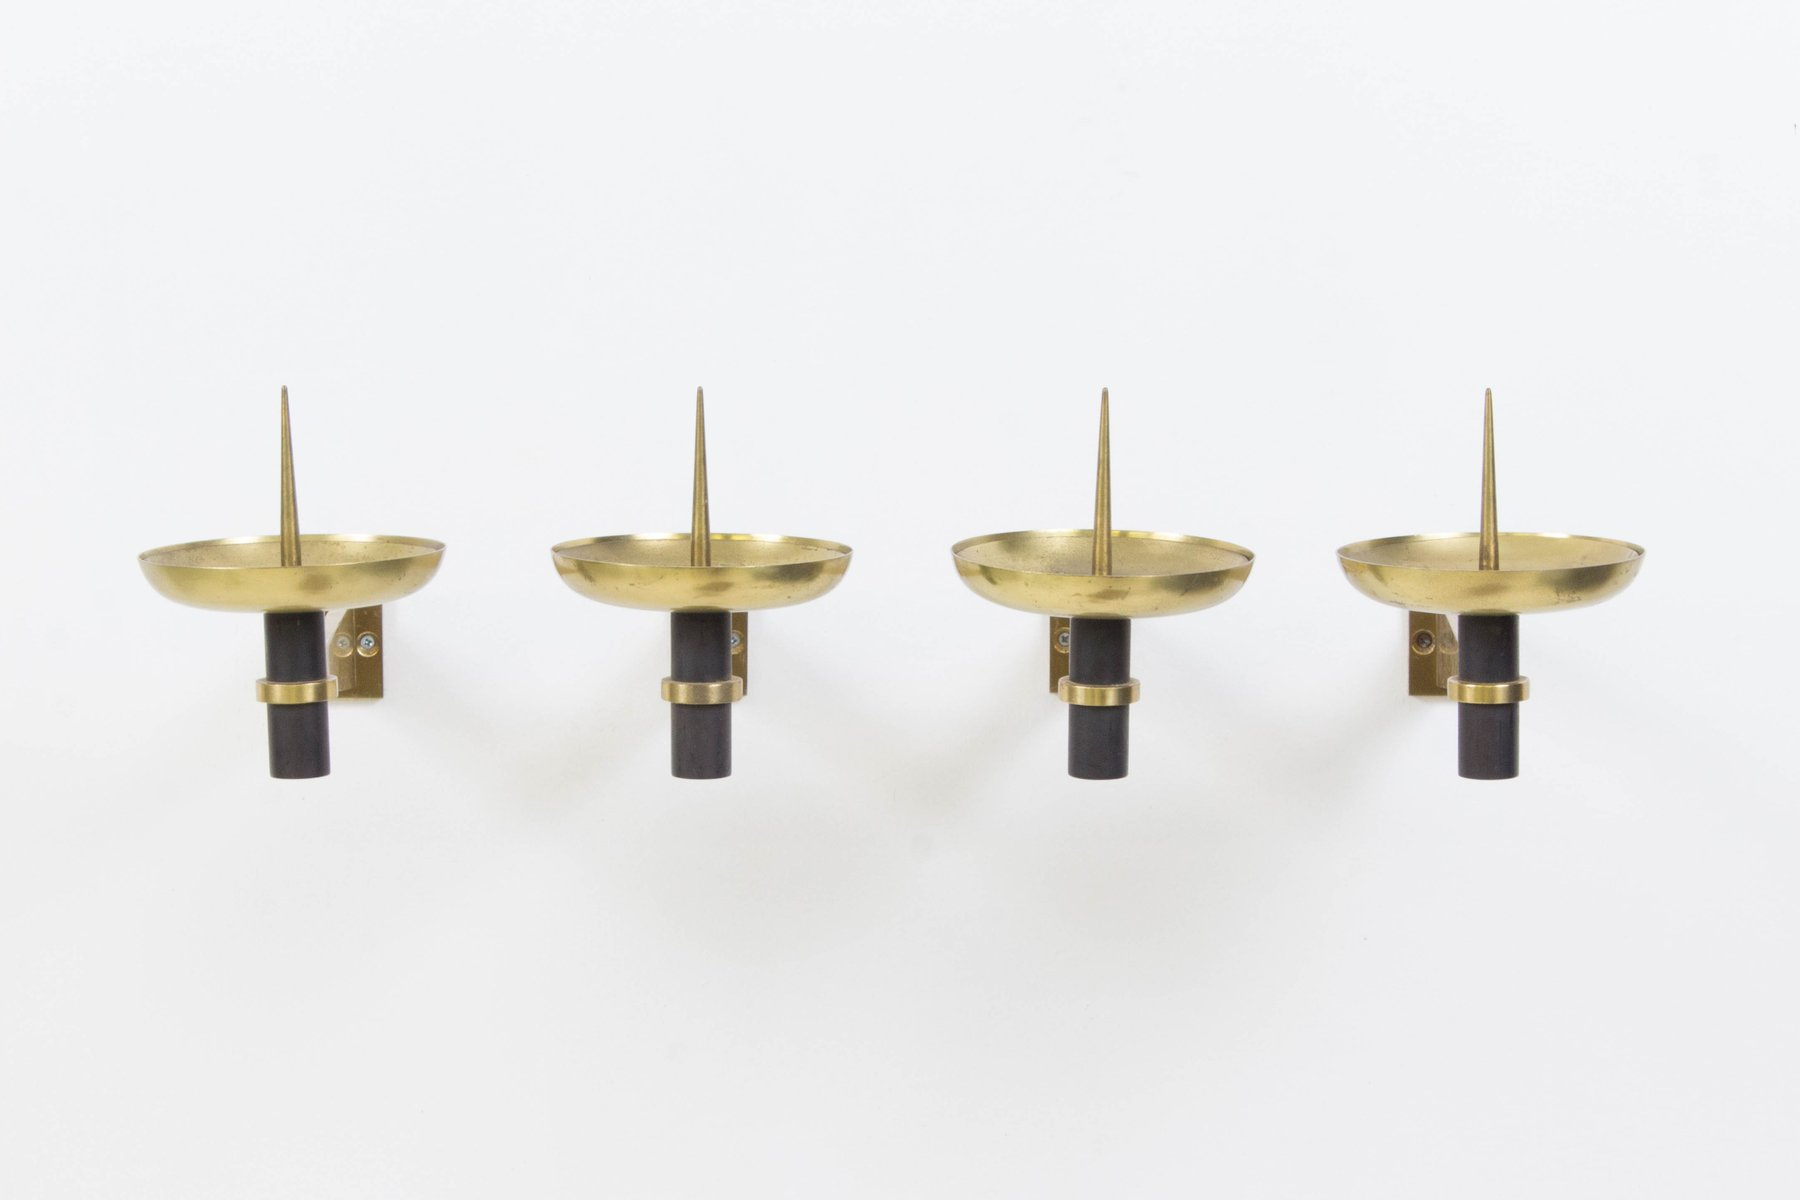 Mid Century French Modern Wall Candle Sconces, 1950s, Set Of 4